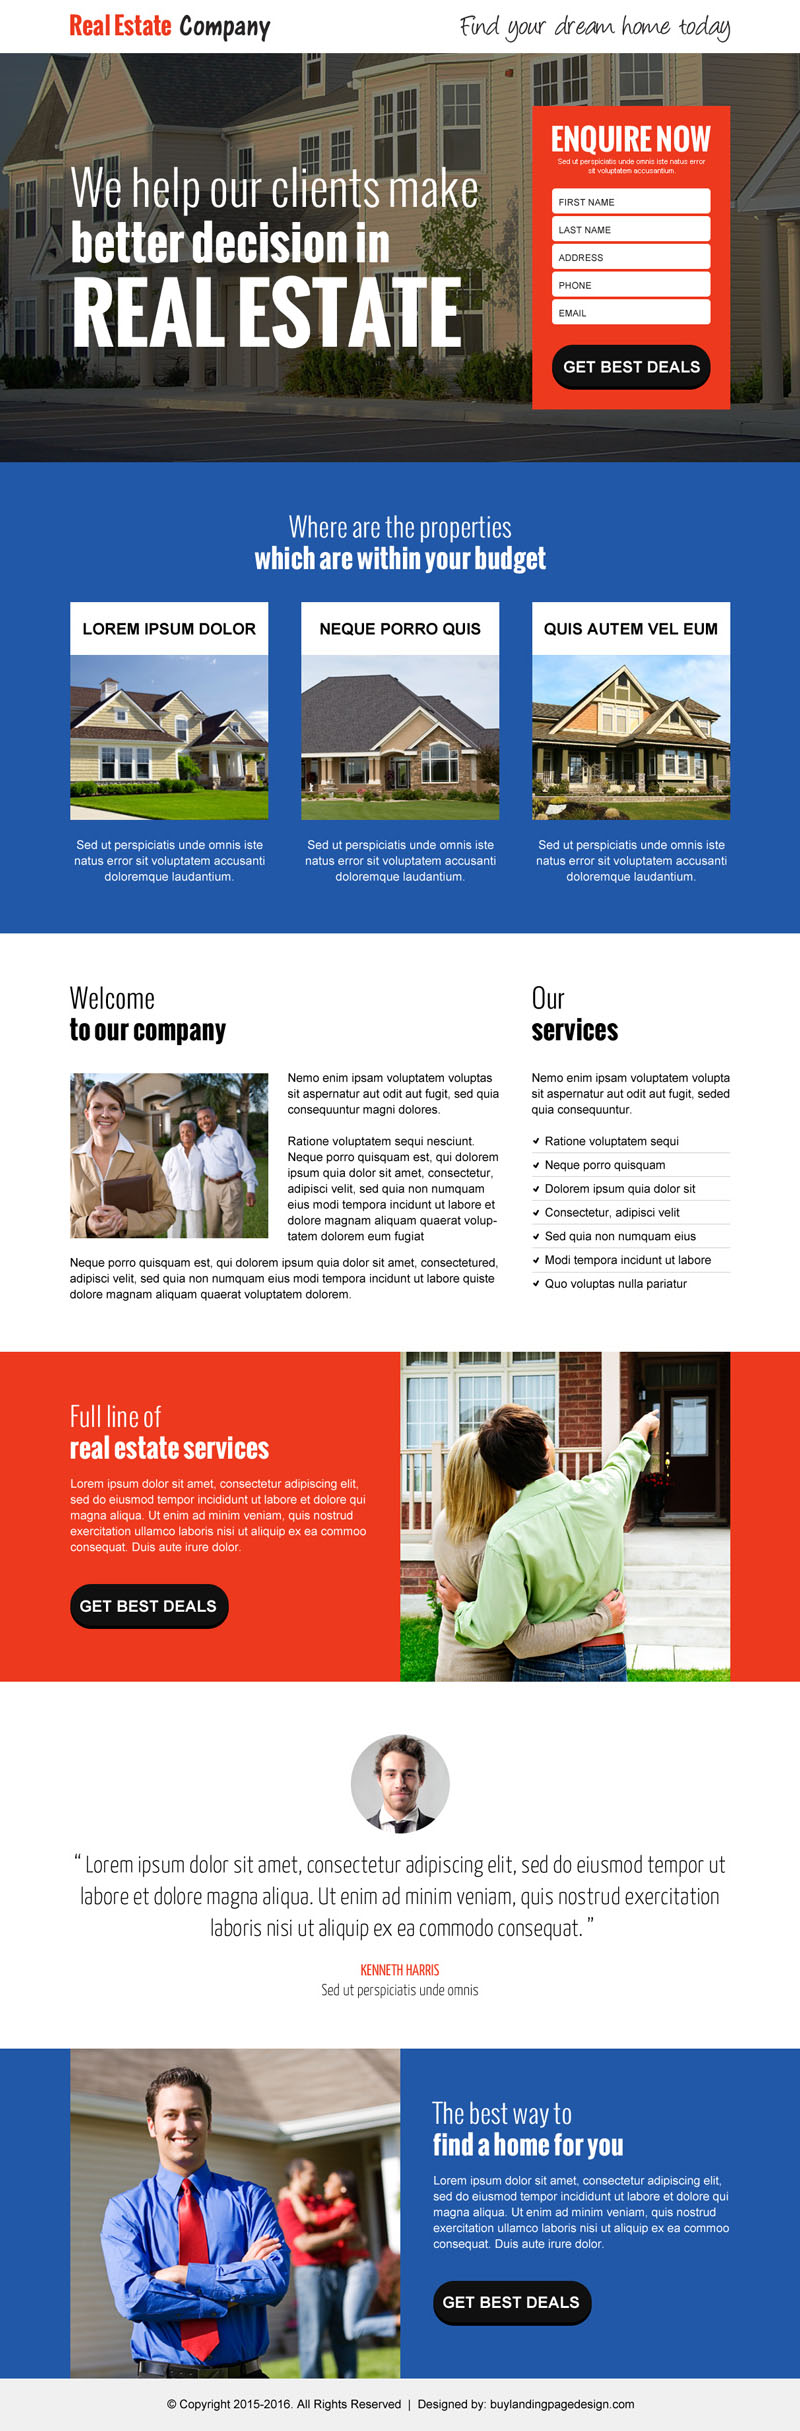 best-real-estate-company-lead-generation-landing-page-for-best-deals-offer-011